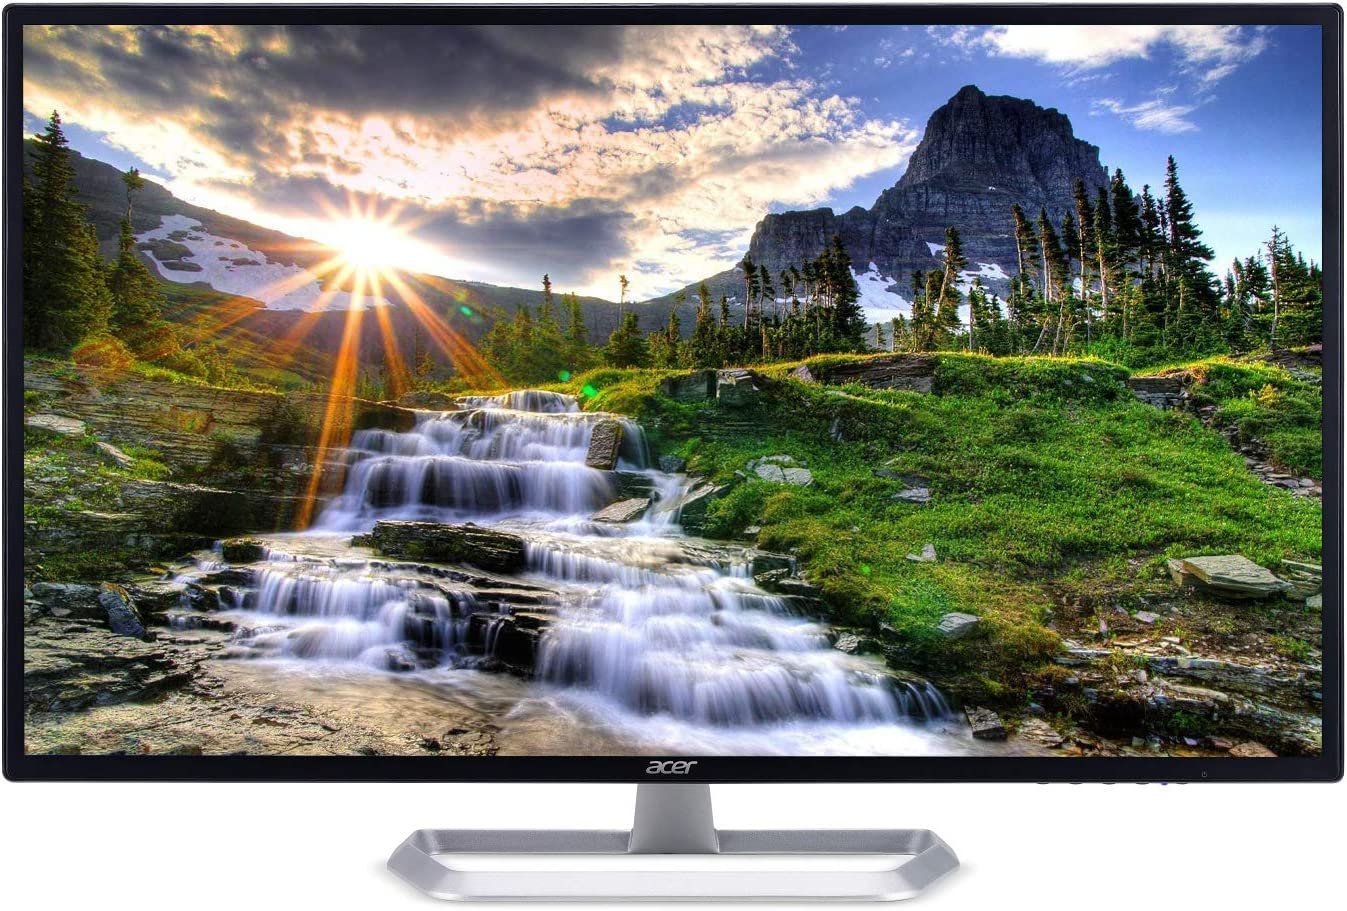 "Acer EB321HQU Cbidpx 31.5"" WQHD (2560 x 1440) IPS Monitor (Display Port, HDMI & DVI port),Black"